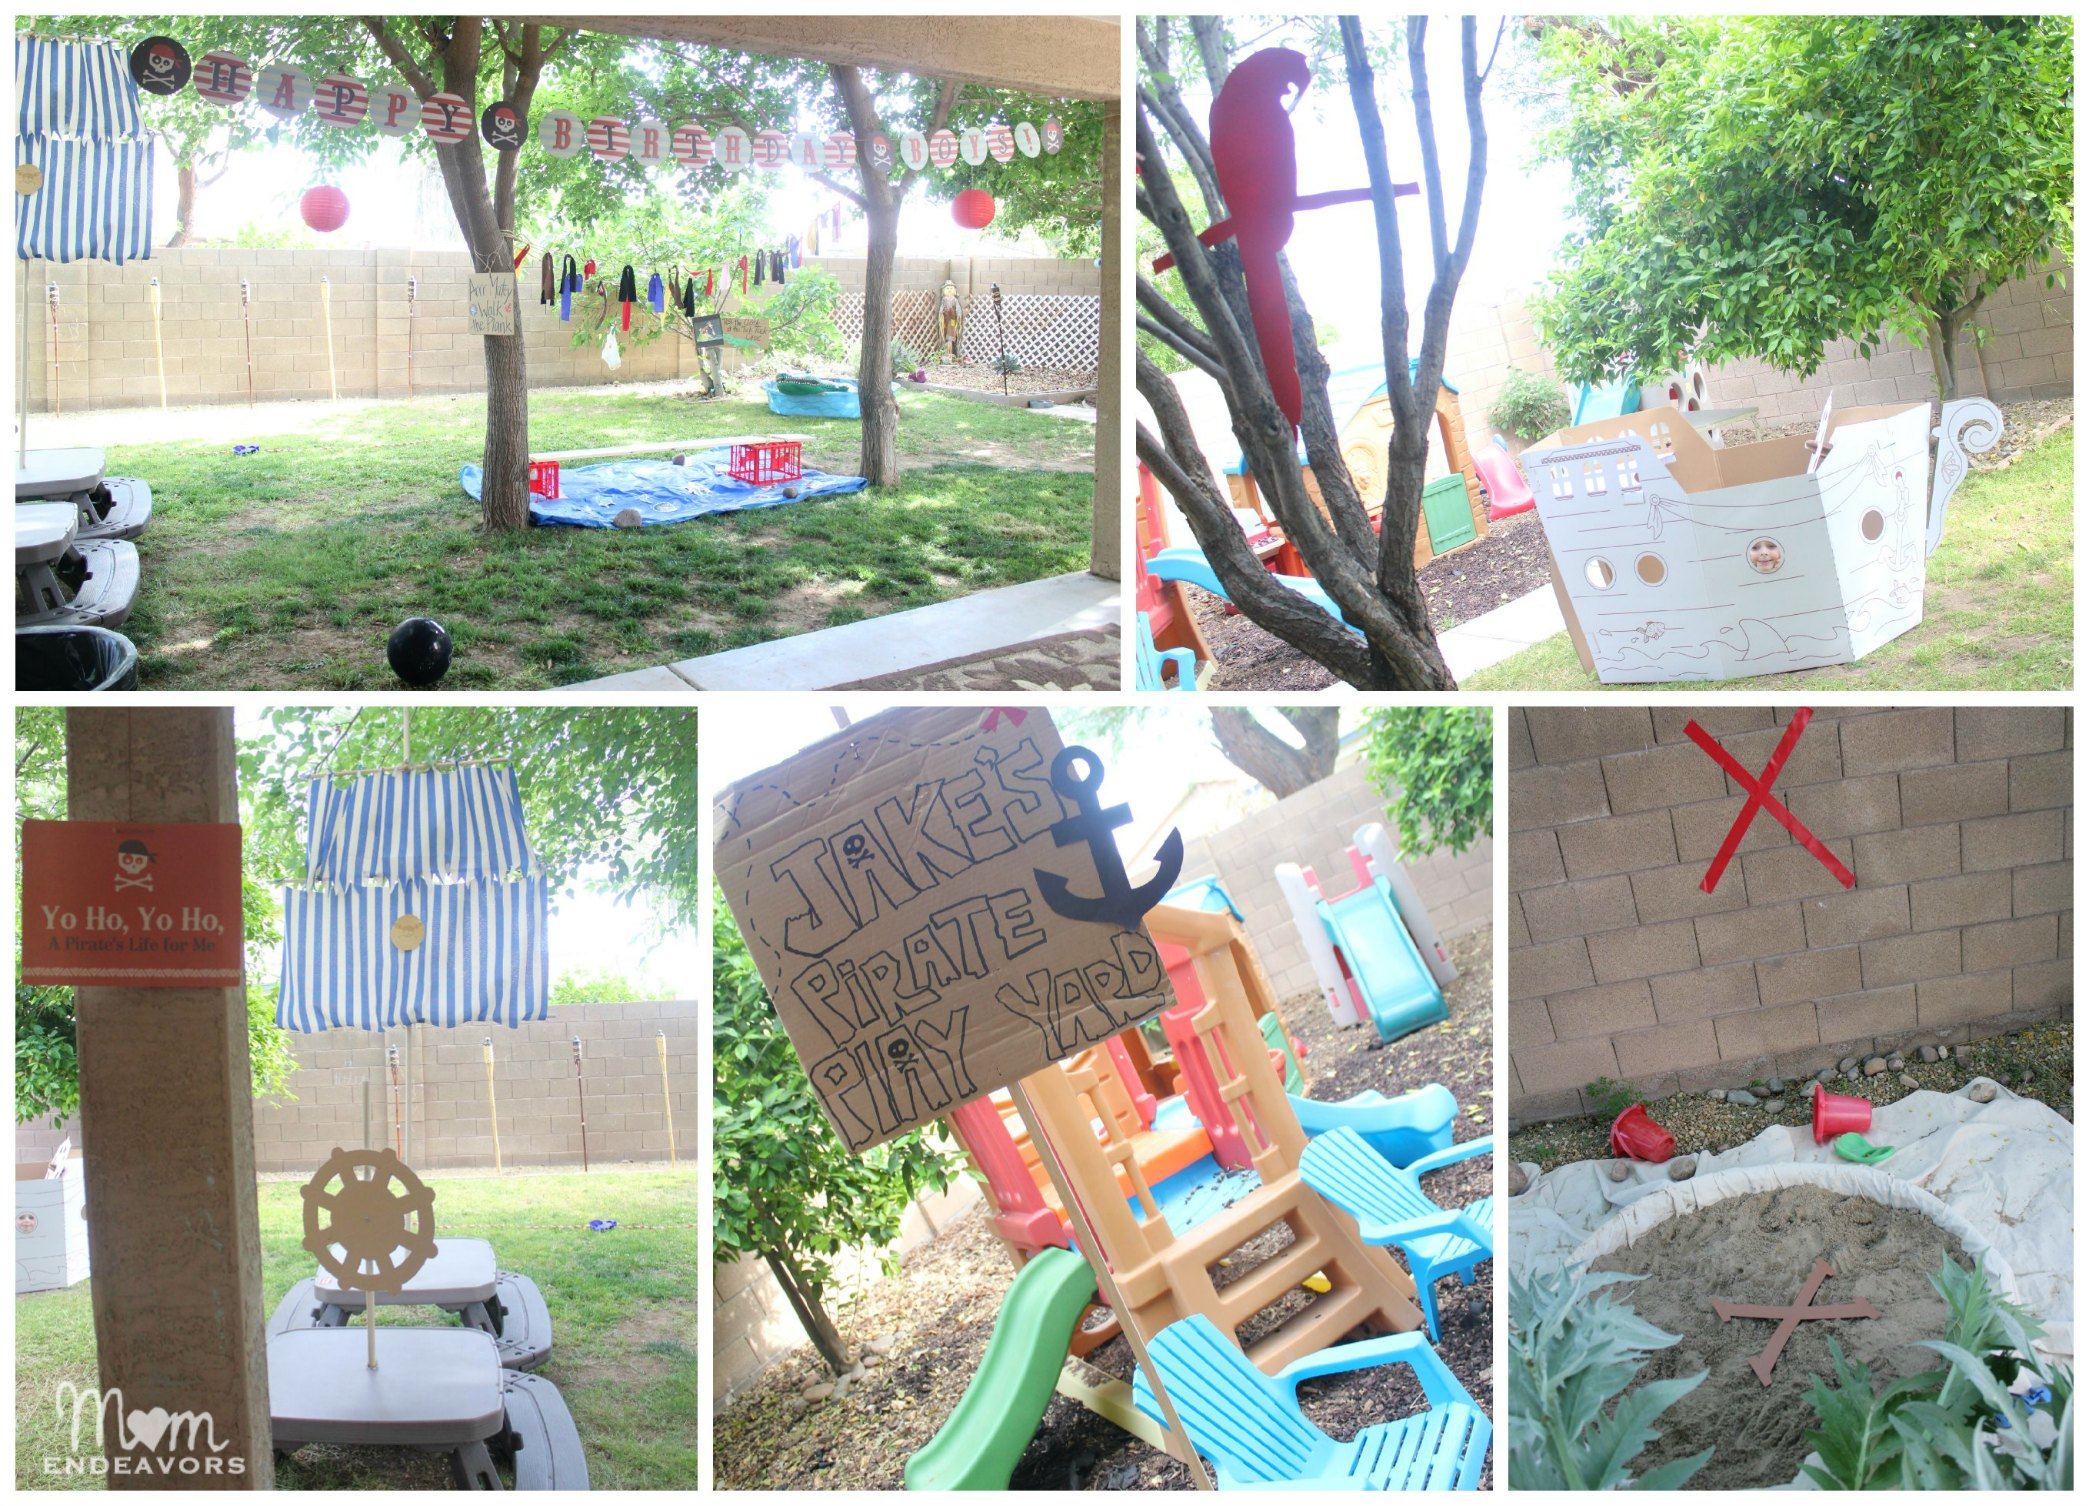 Jake and the never land pirates birthday party for Yard decorations ideas